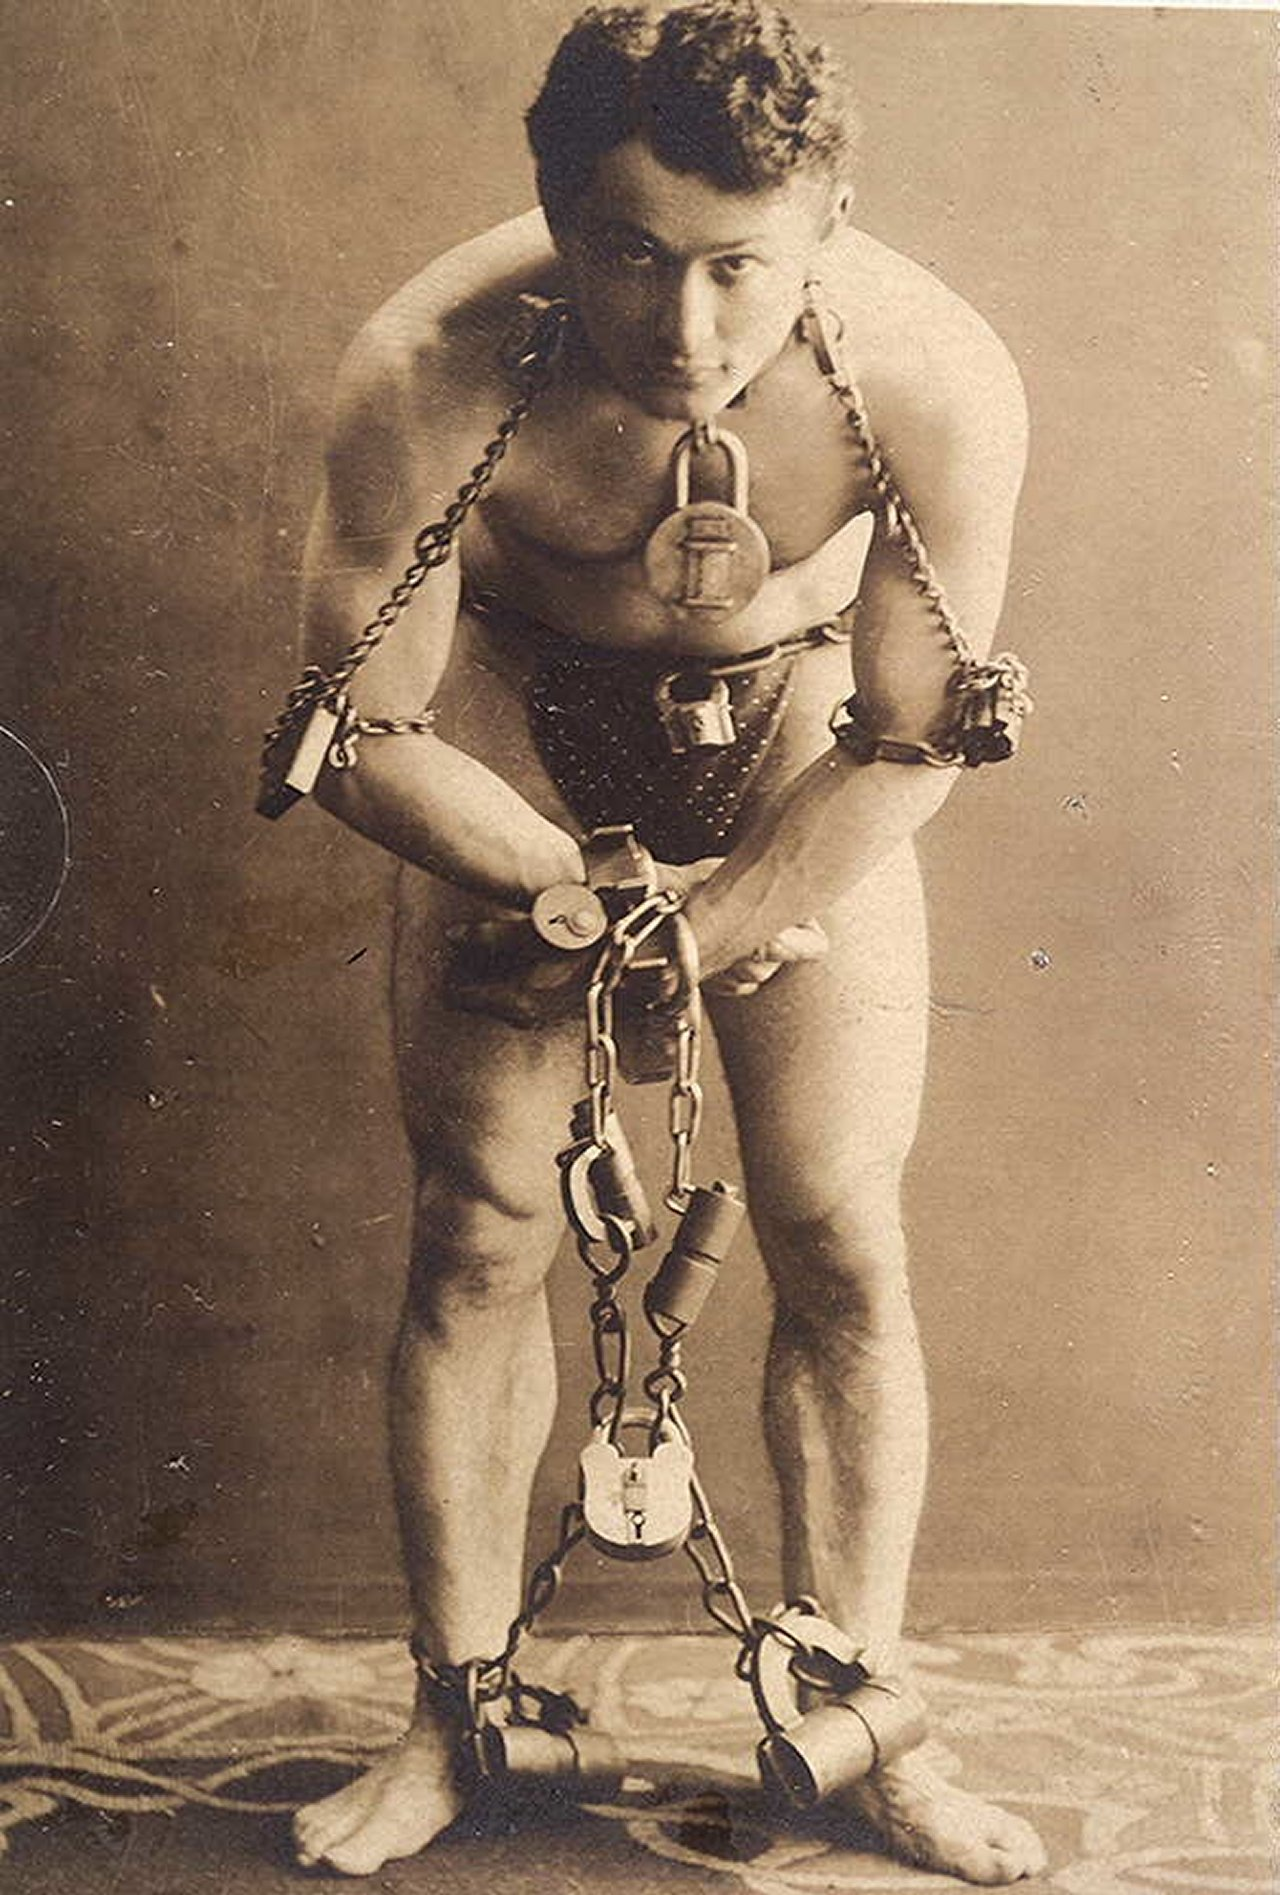 the-legendary-harry-houdini-to-perform-tricks-with-a-self-liberation-1899